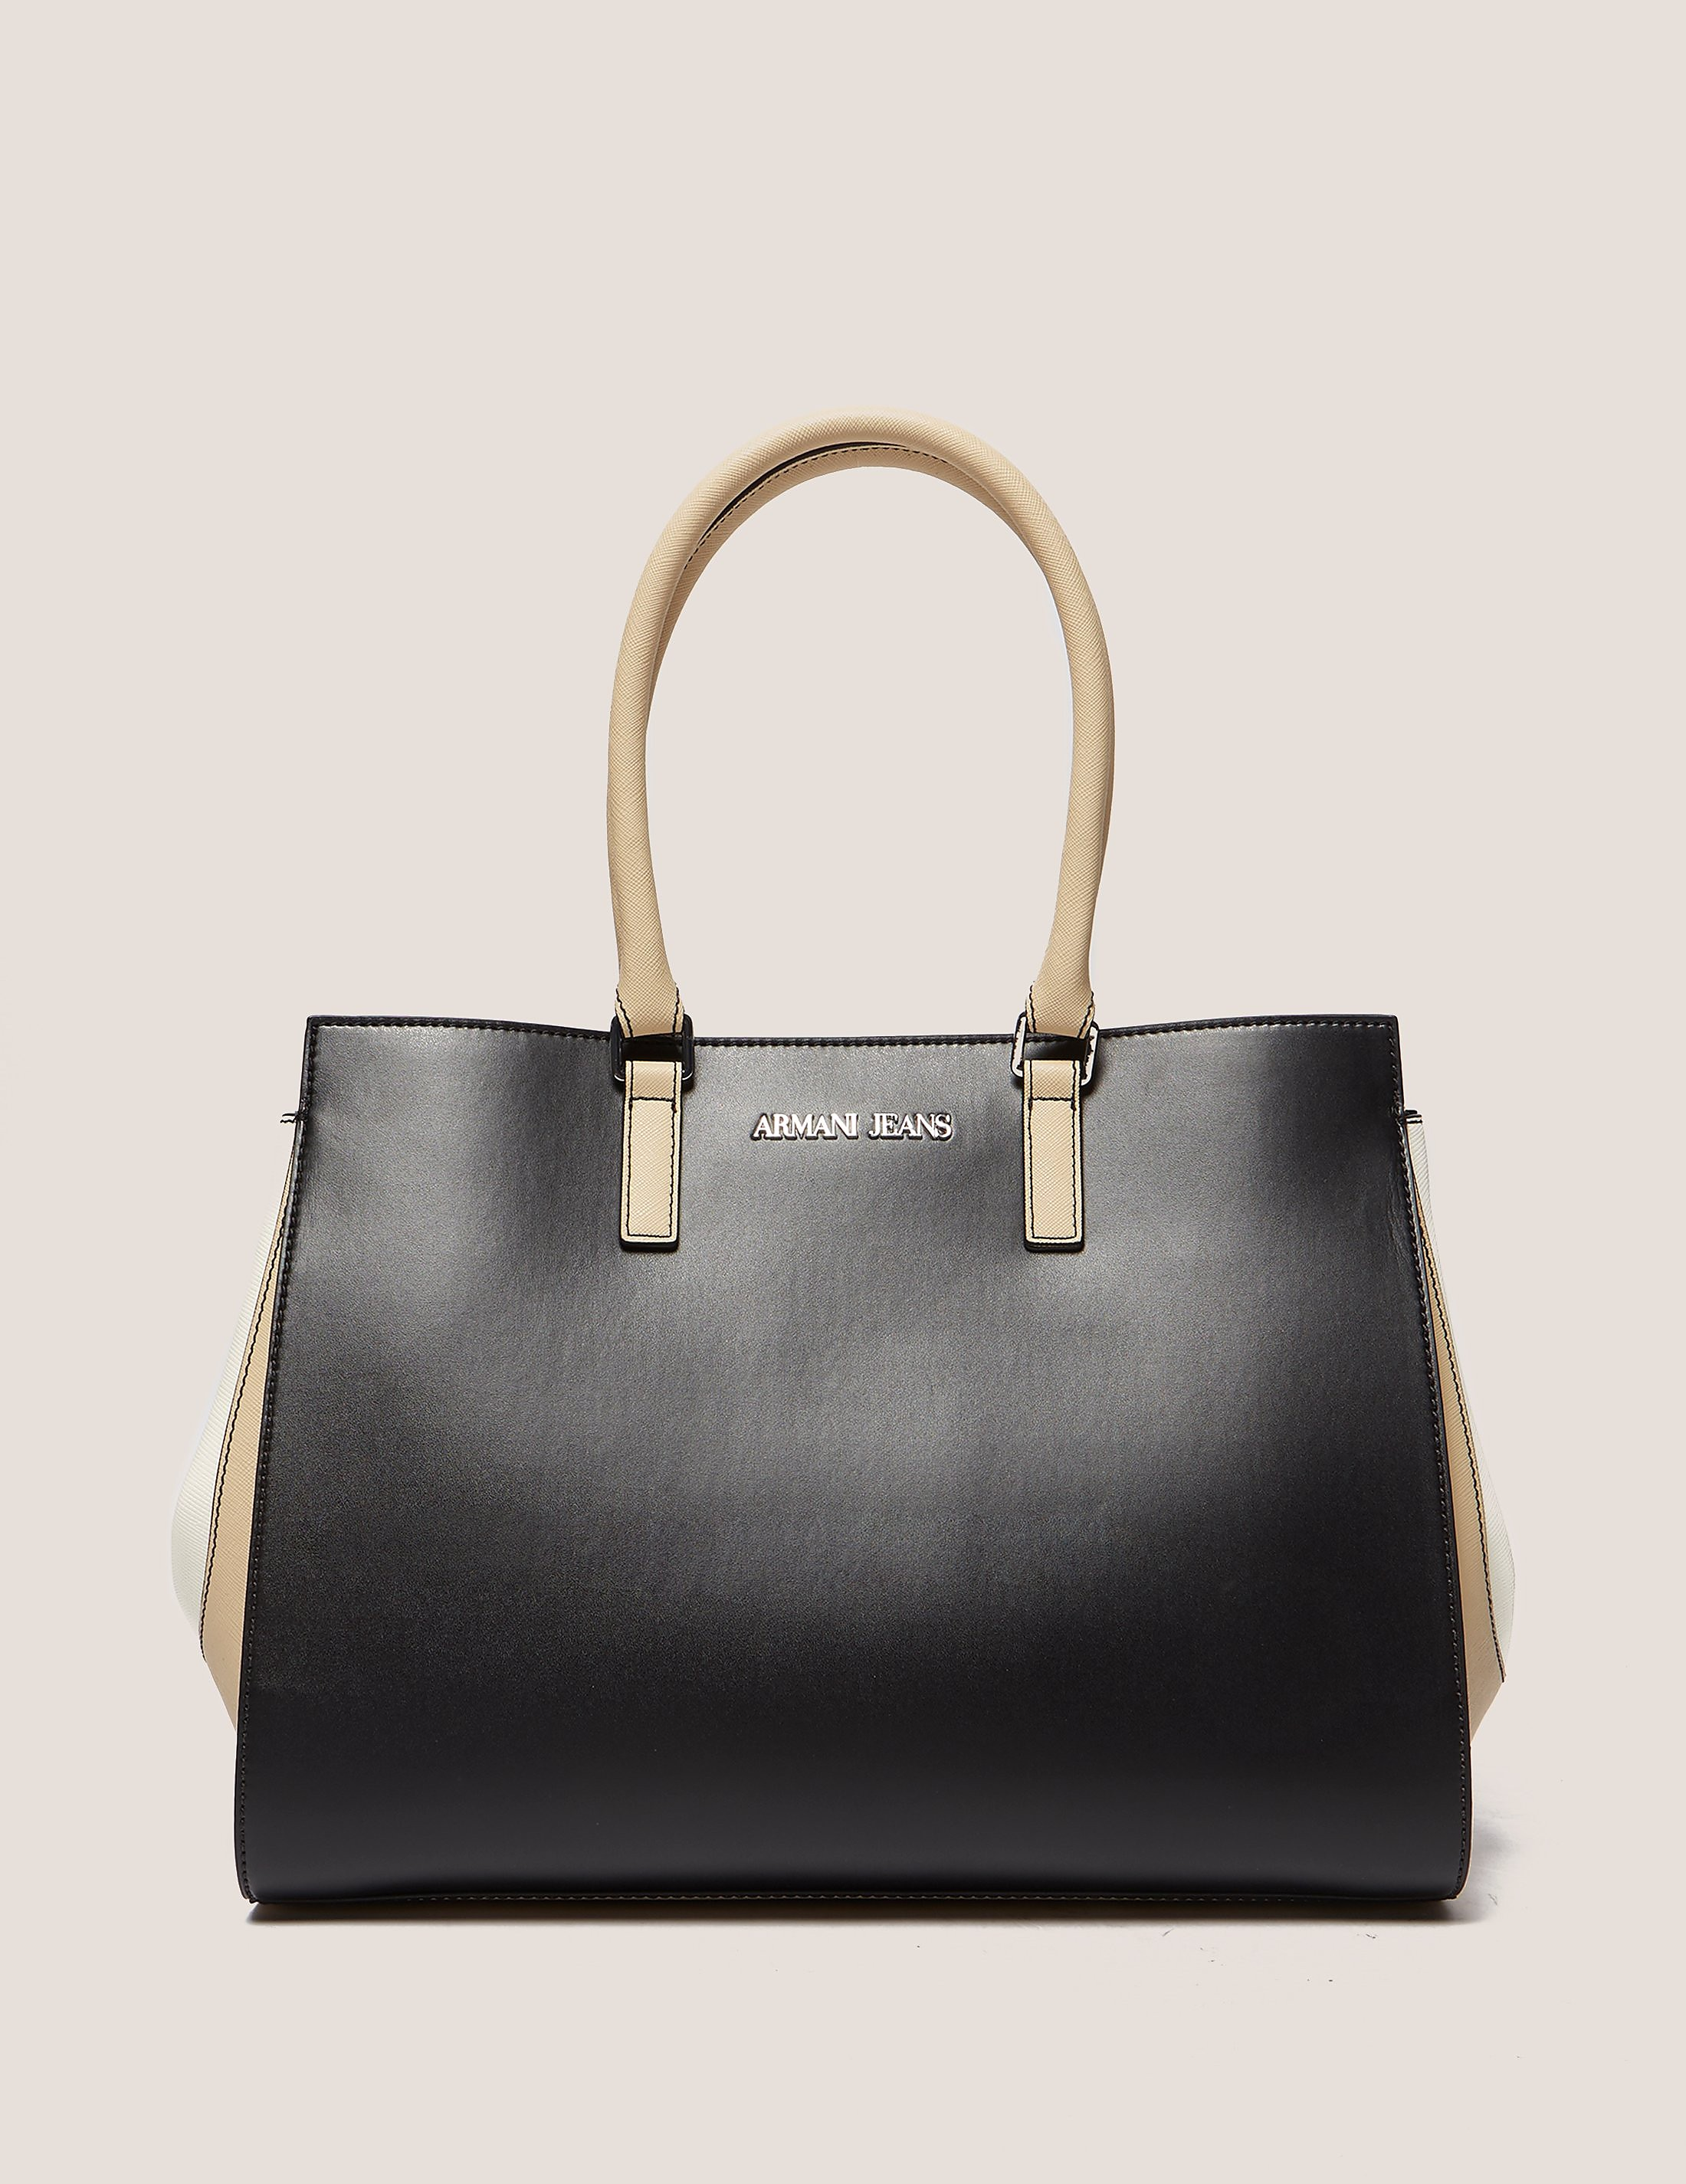 Armani Jeans Colour Block Shopper Bag